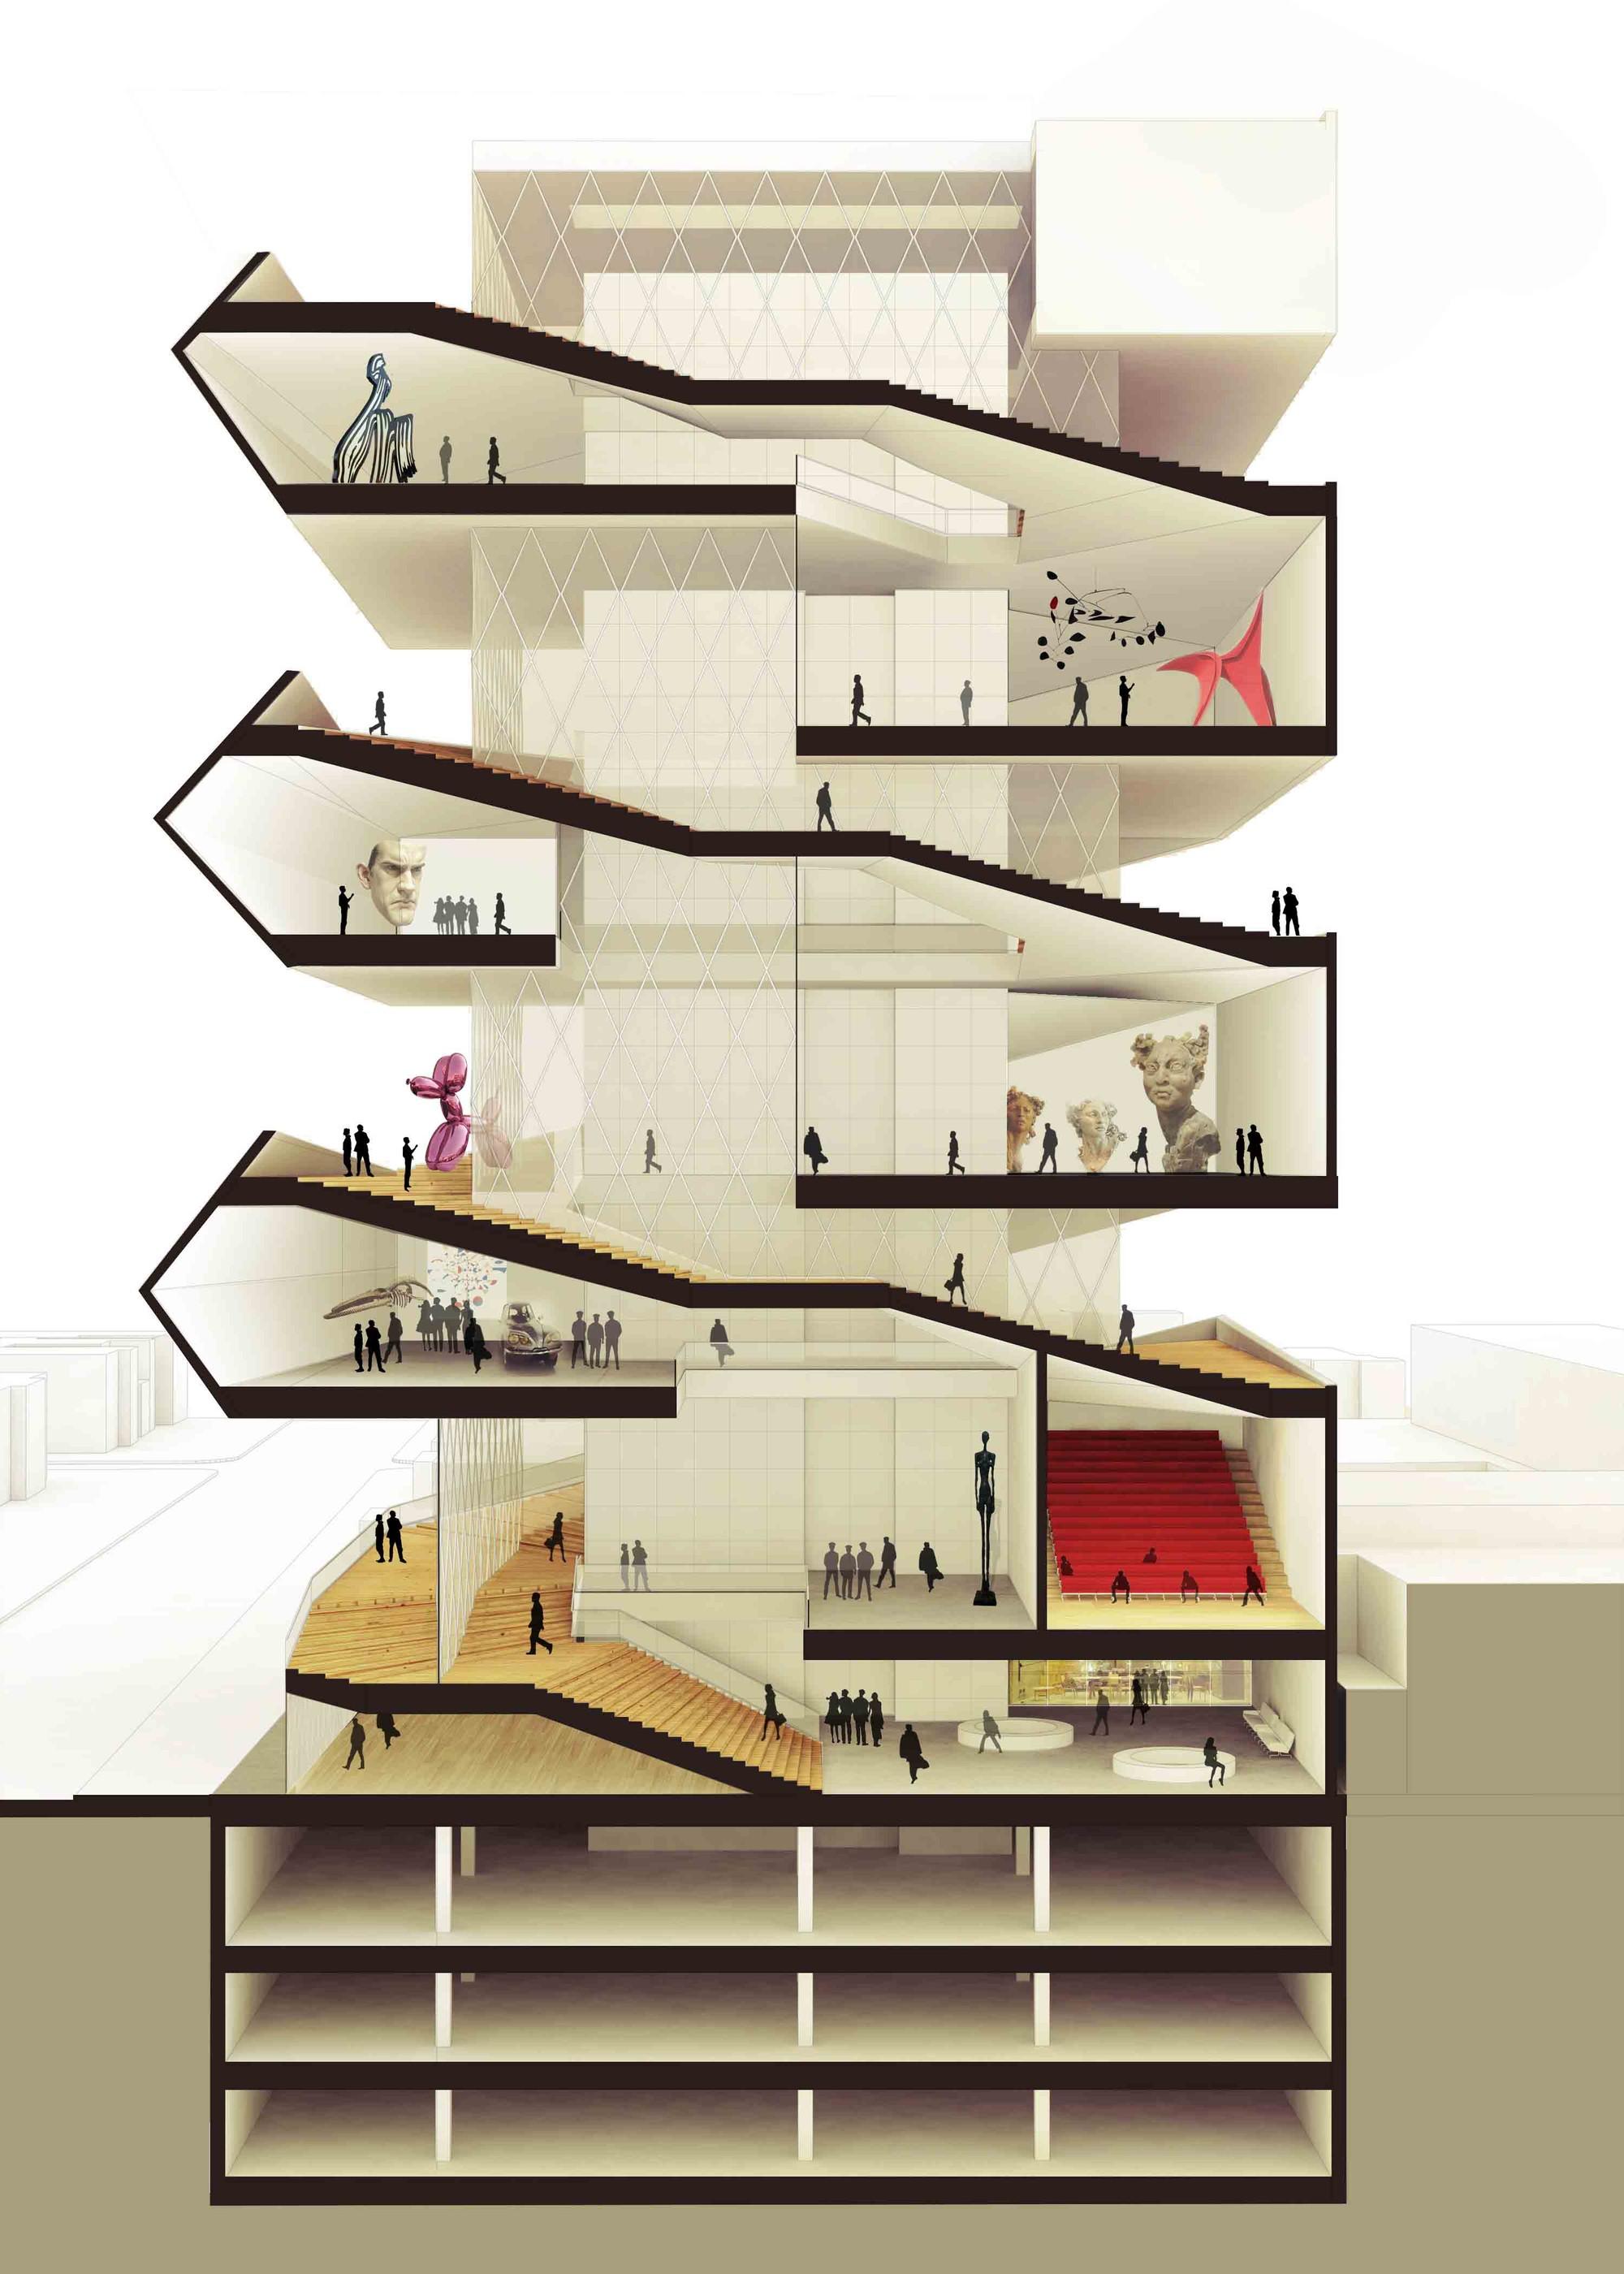 gallery of cultural center in guadalajara competition entry pm g architects 10. Black Bedroom Furniture Sets. Home Design Ideas